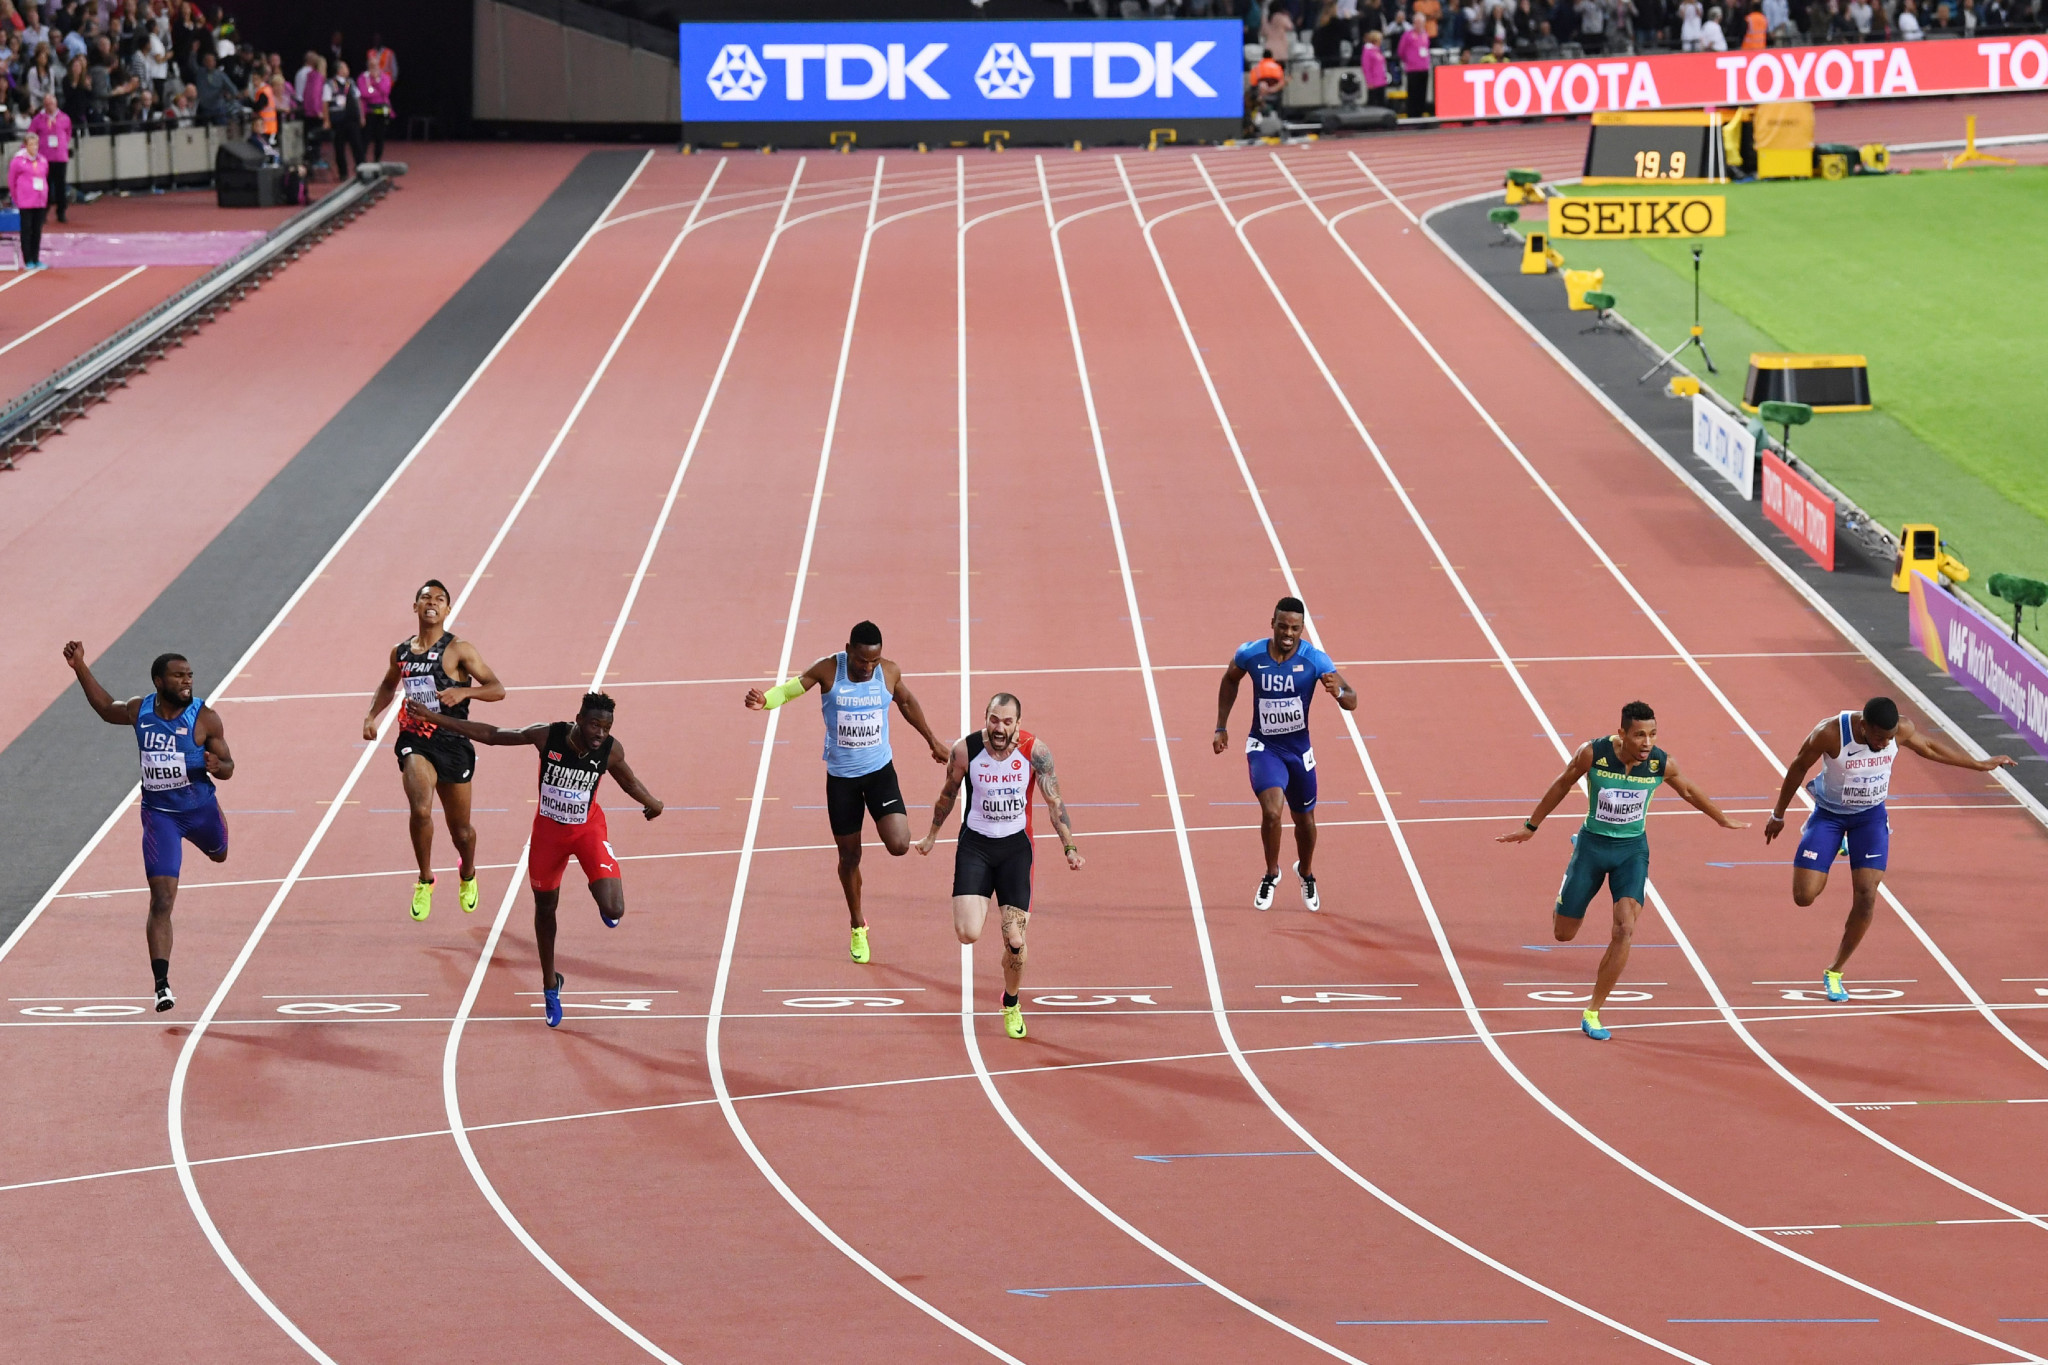 Wayde Van Niekerk, second right, fails in his attempt to win the 400/200m double at this year's IAAF World Championships as he is beaten to the line by Ramil Guliyev of Turkey ©Getty Images